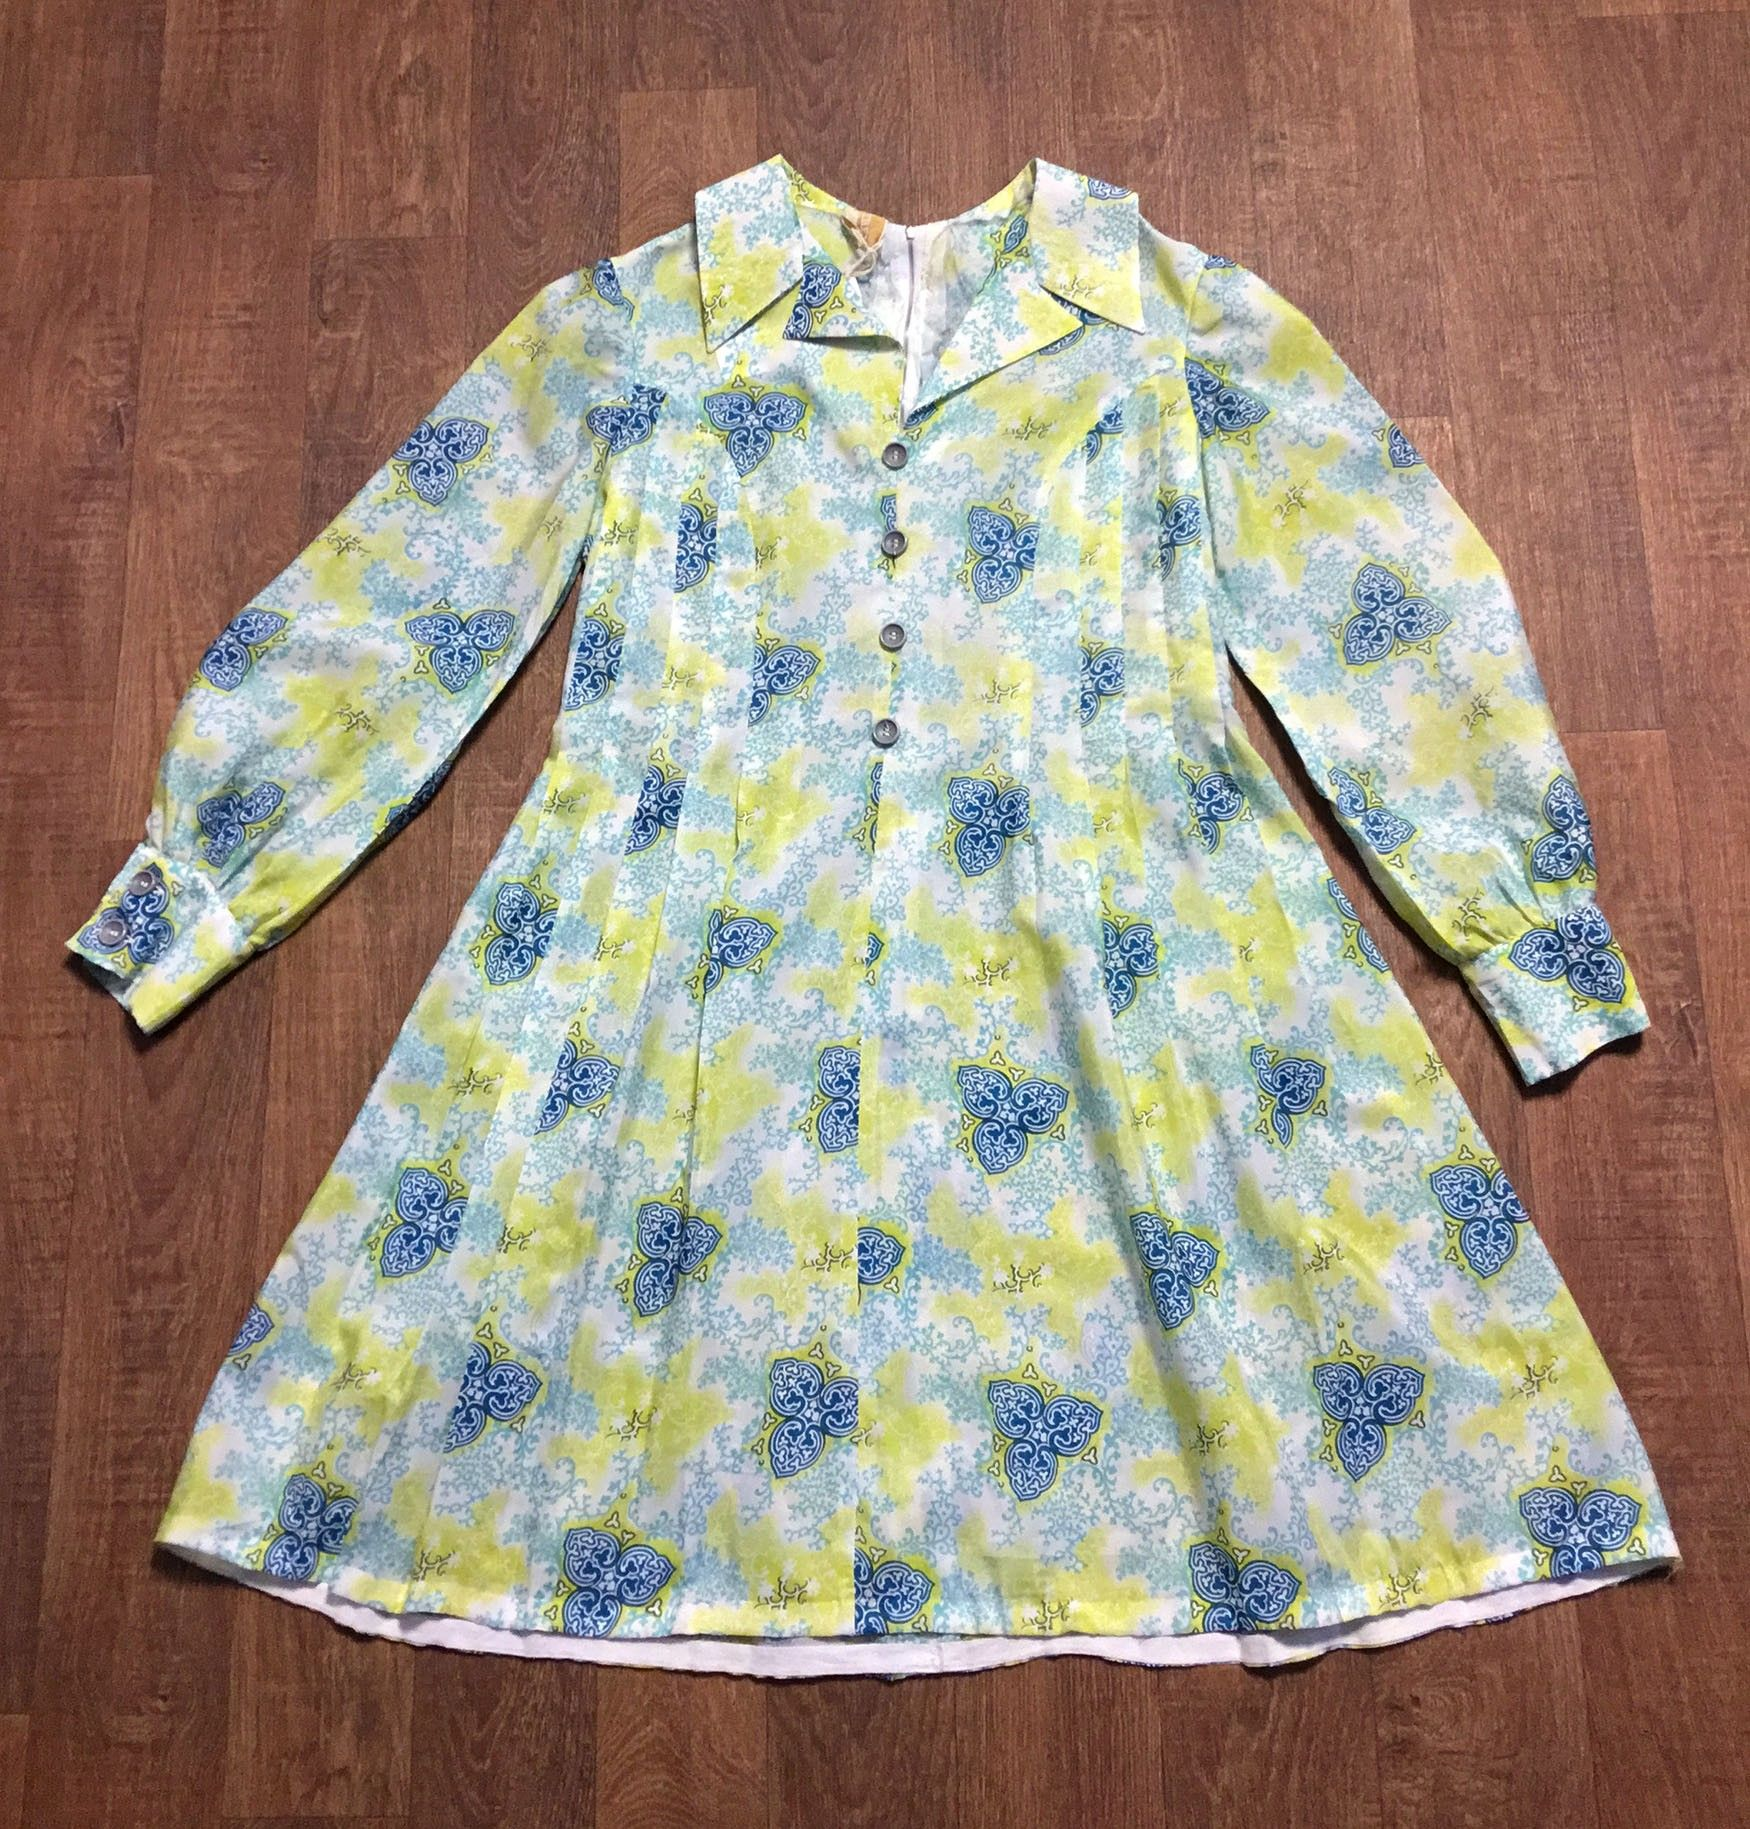 1970s Vintage Lime Green Celtic Print Smock Dress UK Size 12/14